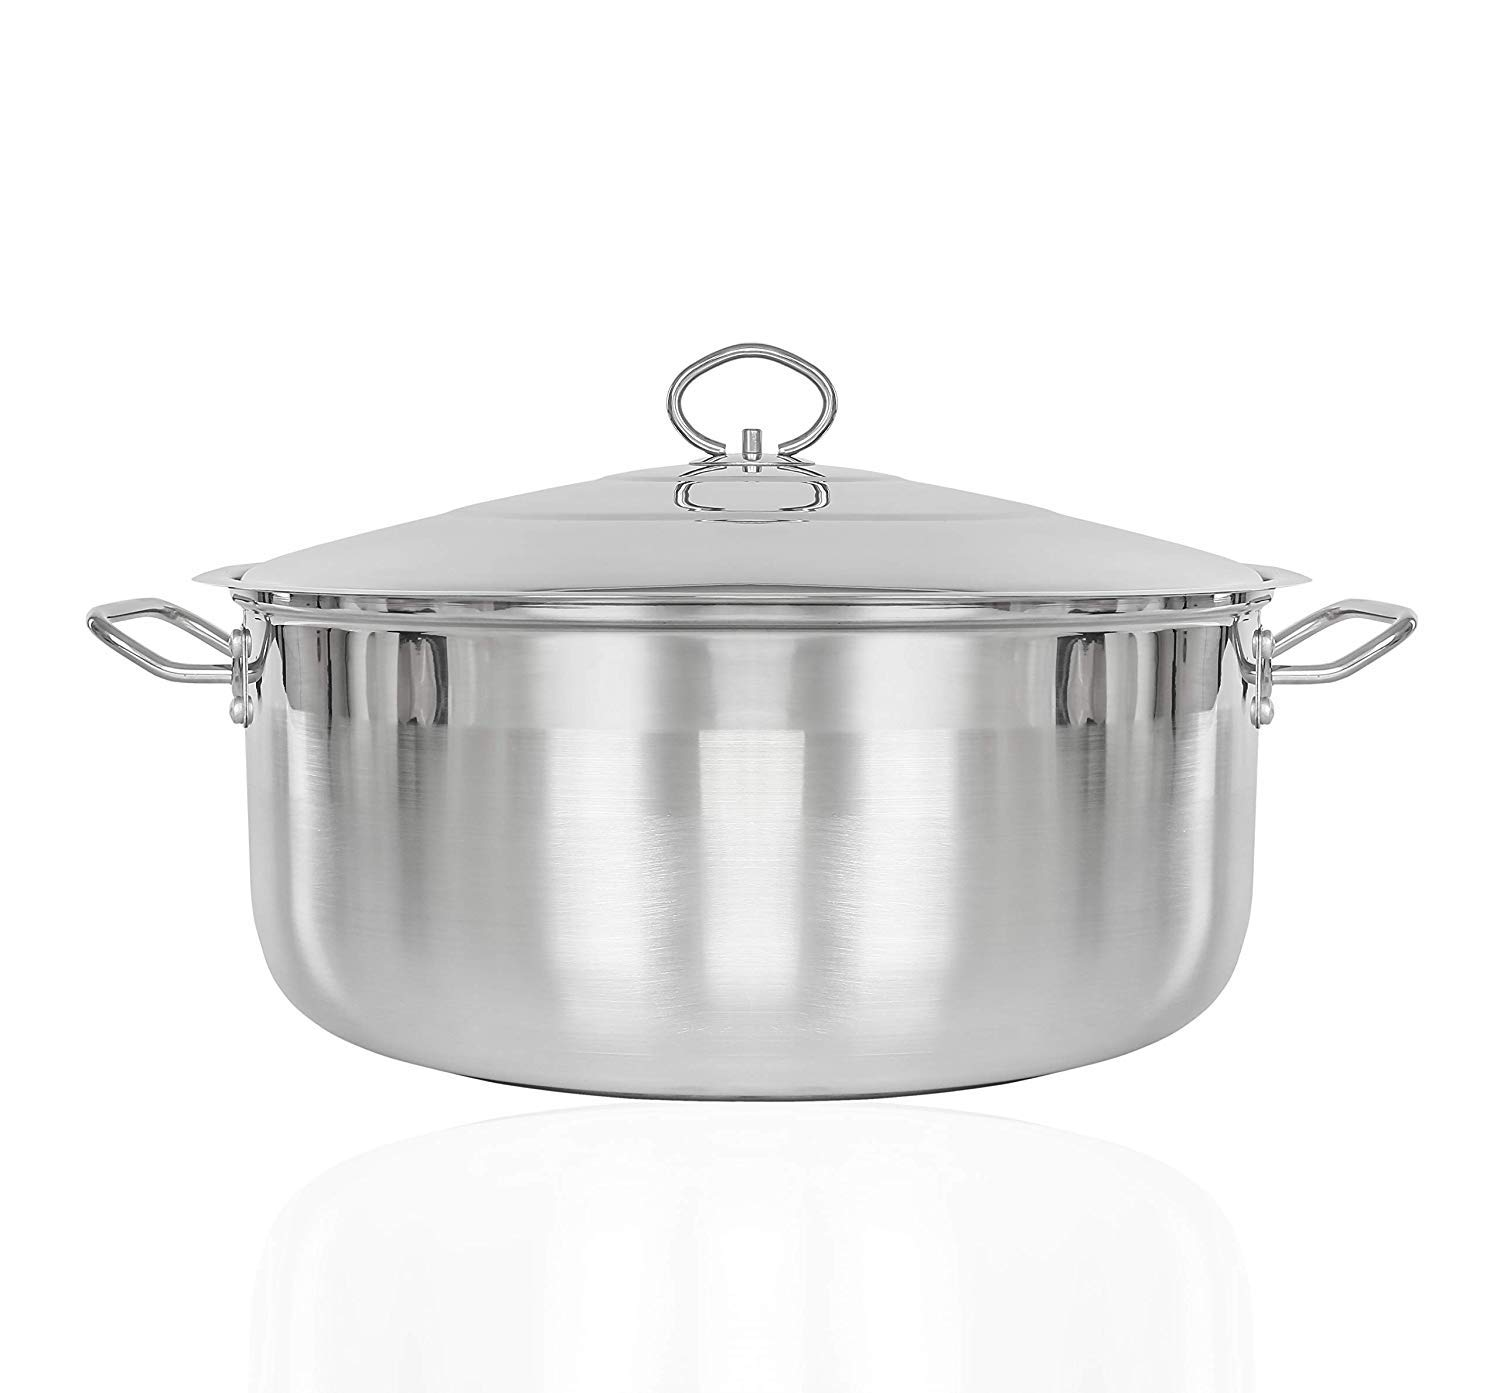 CONCORD Premium Stainless Steel 3-Ply Stock Pot (19 QT)